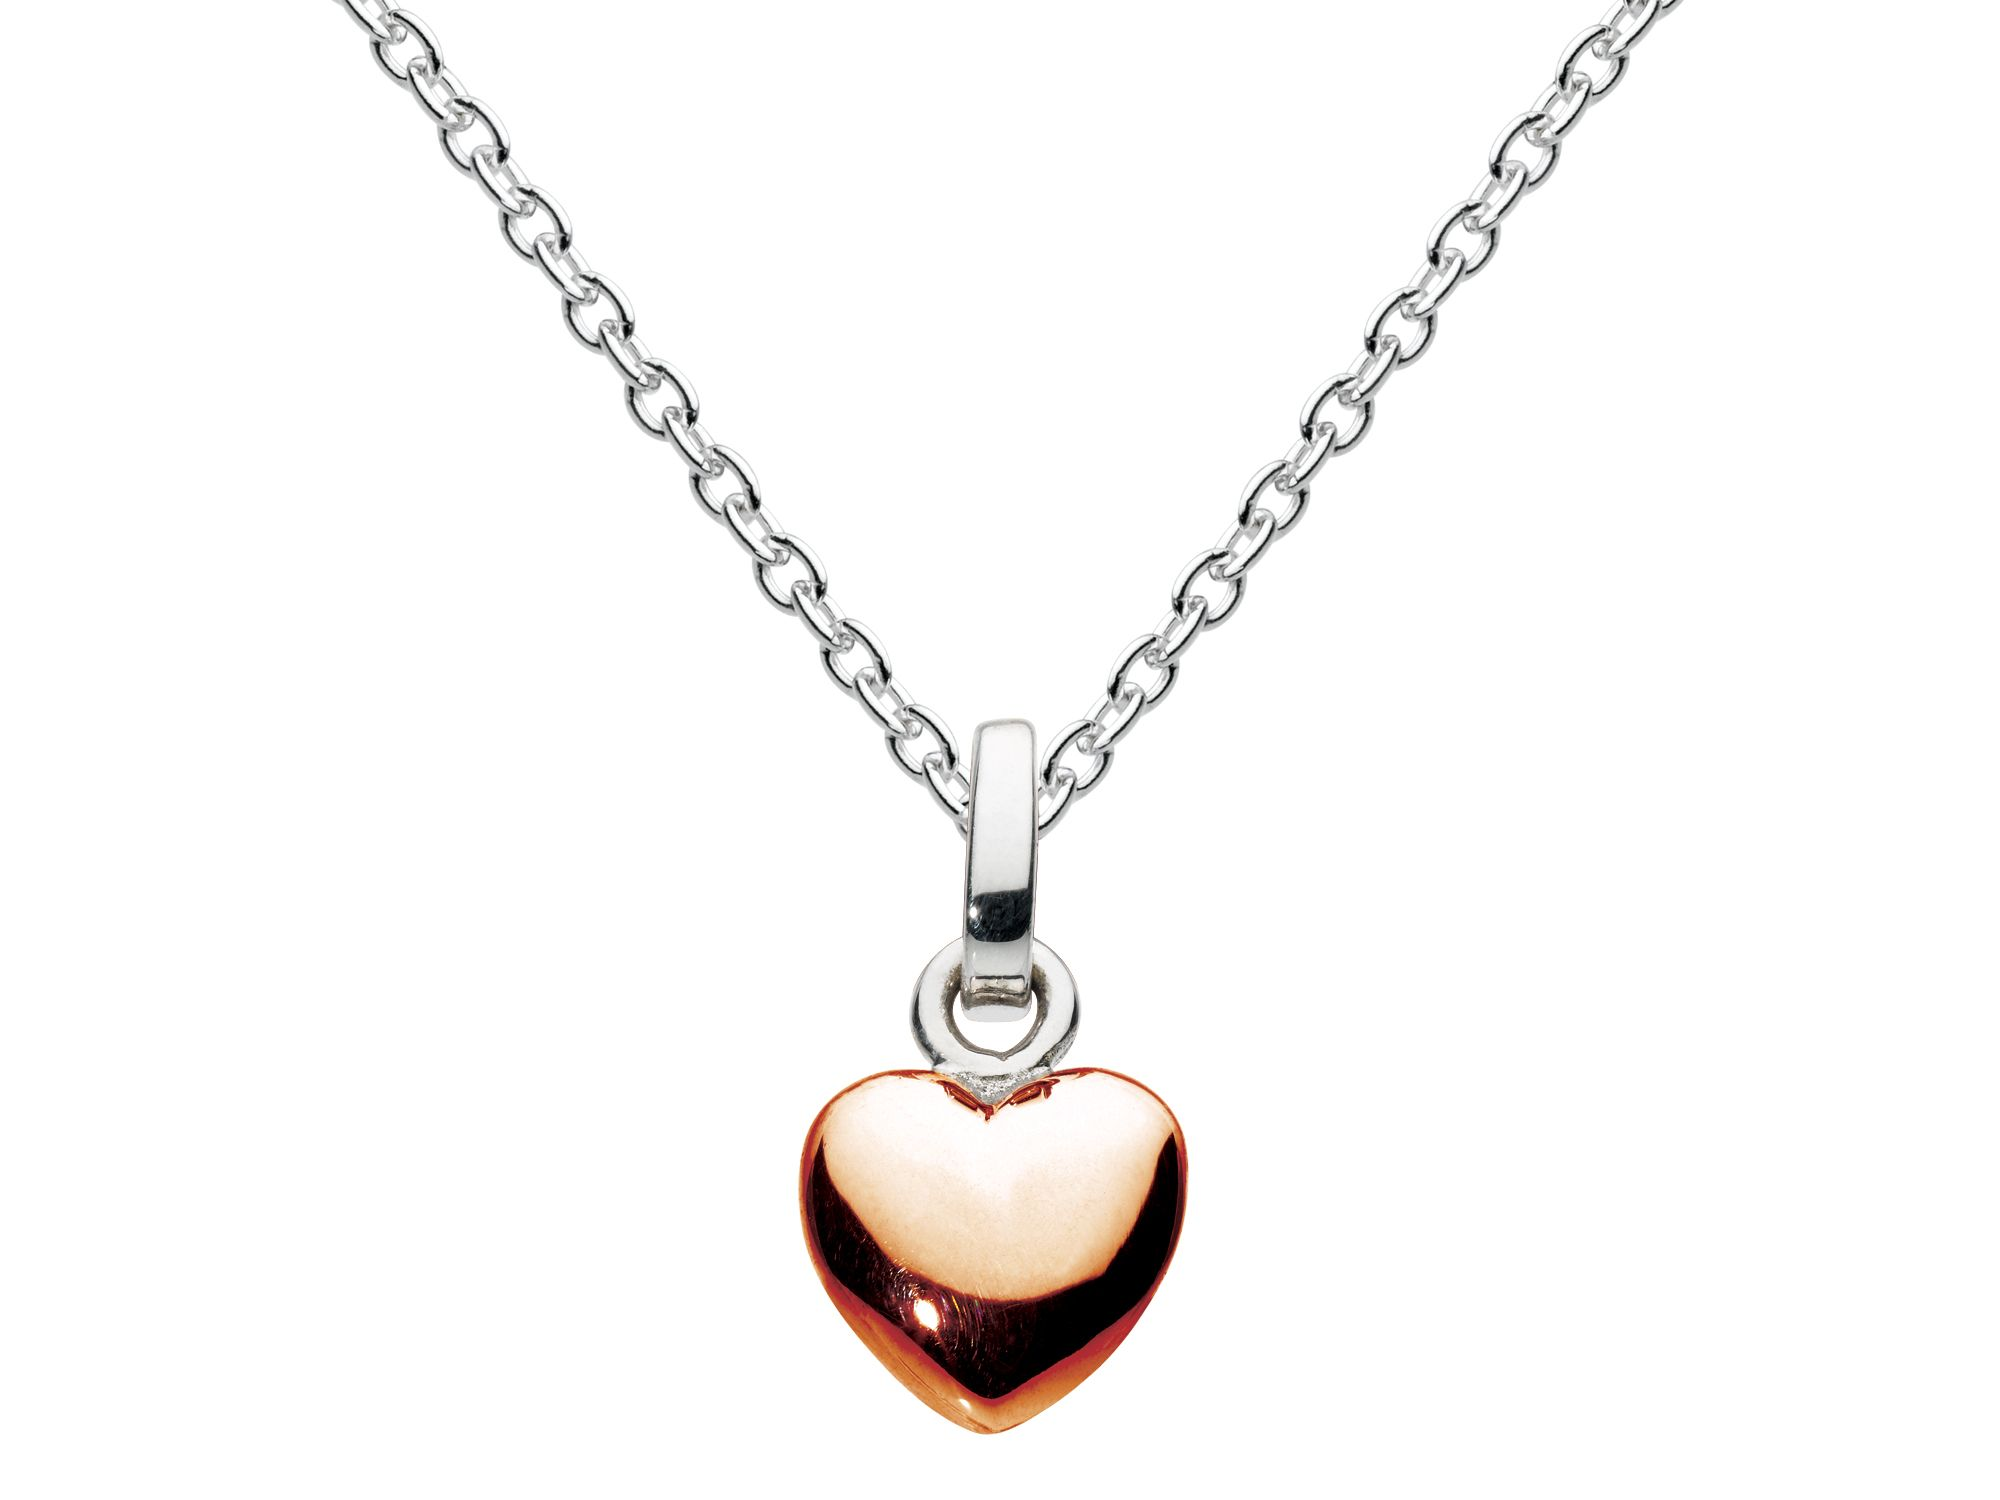 Rose gold plate solid heart pendant